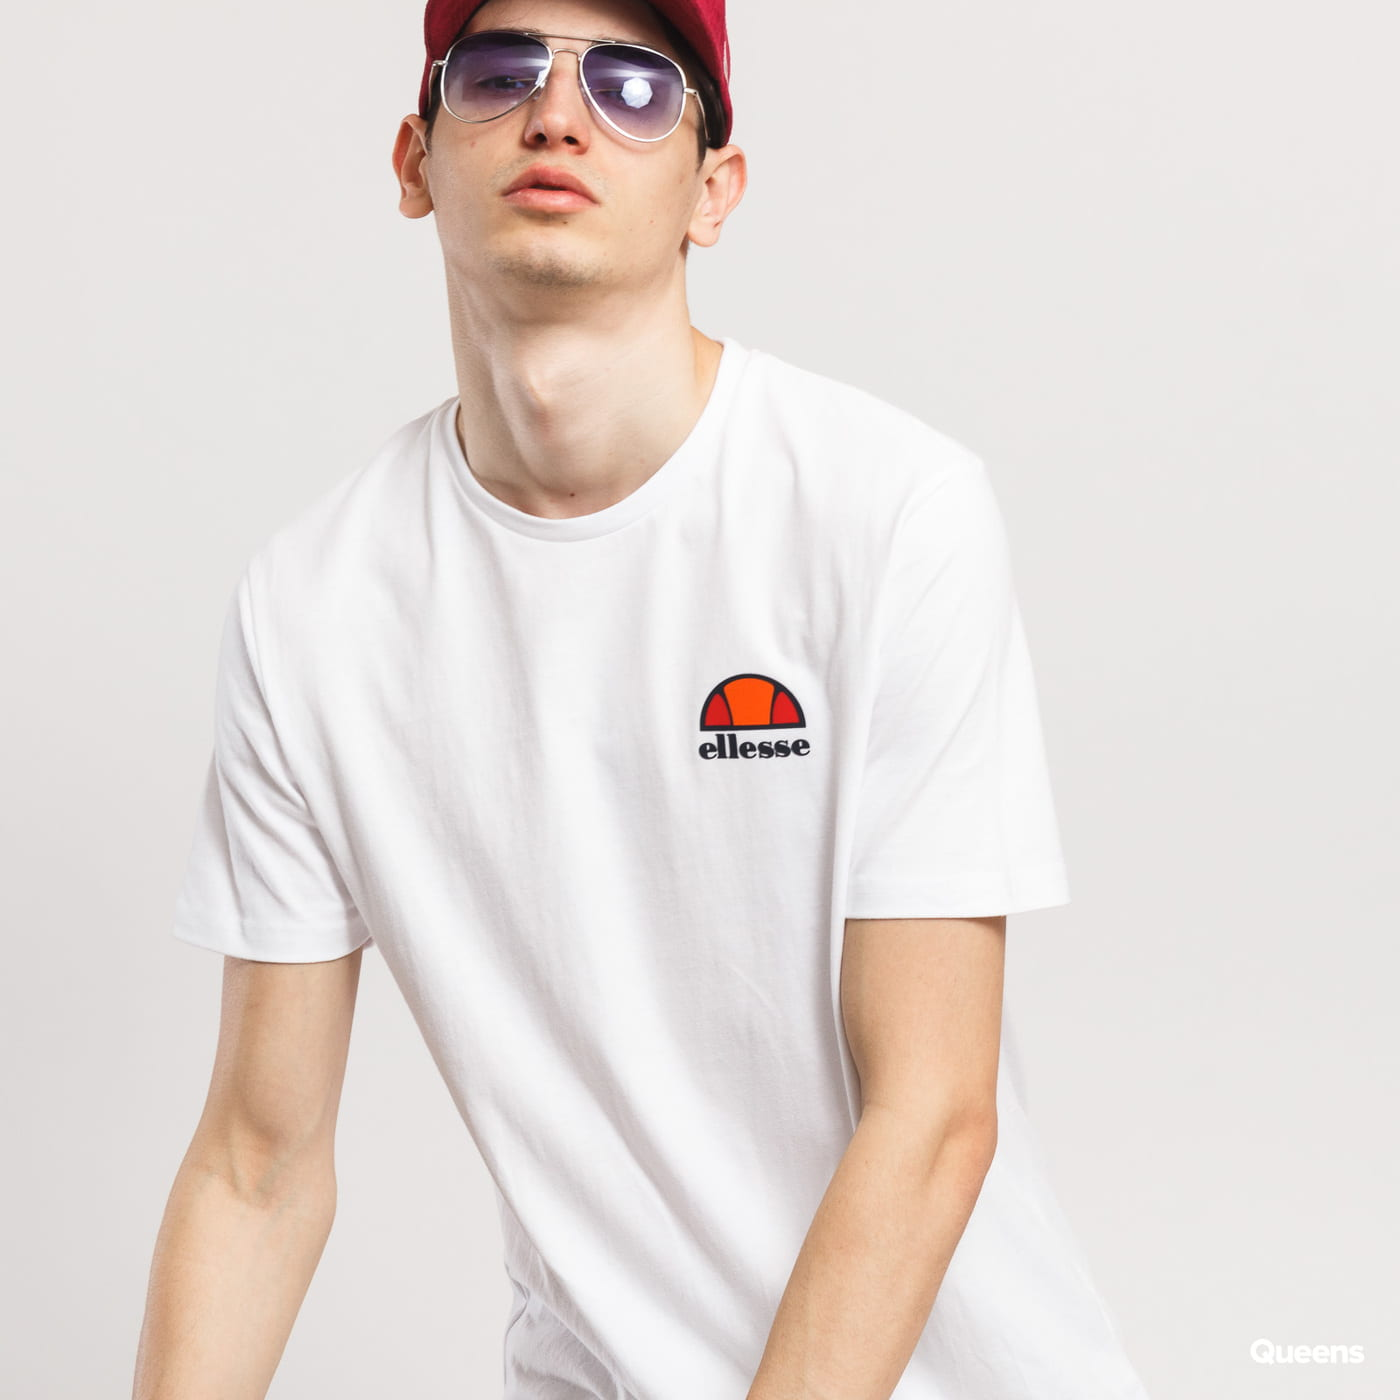 ellesse Canaletto T-shirt white